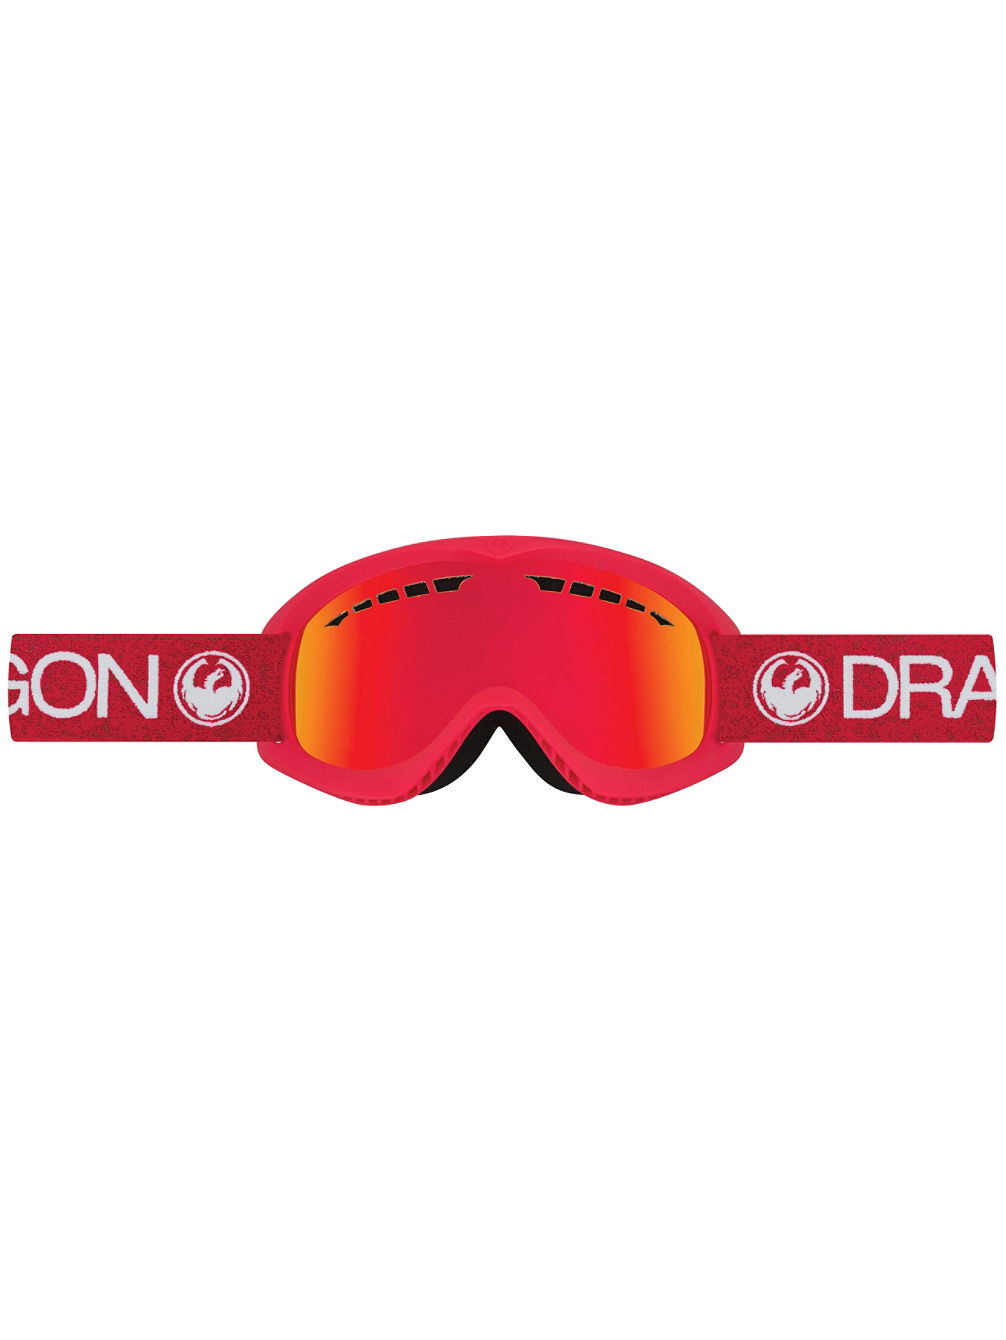 dragon-dx-red